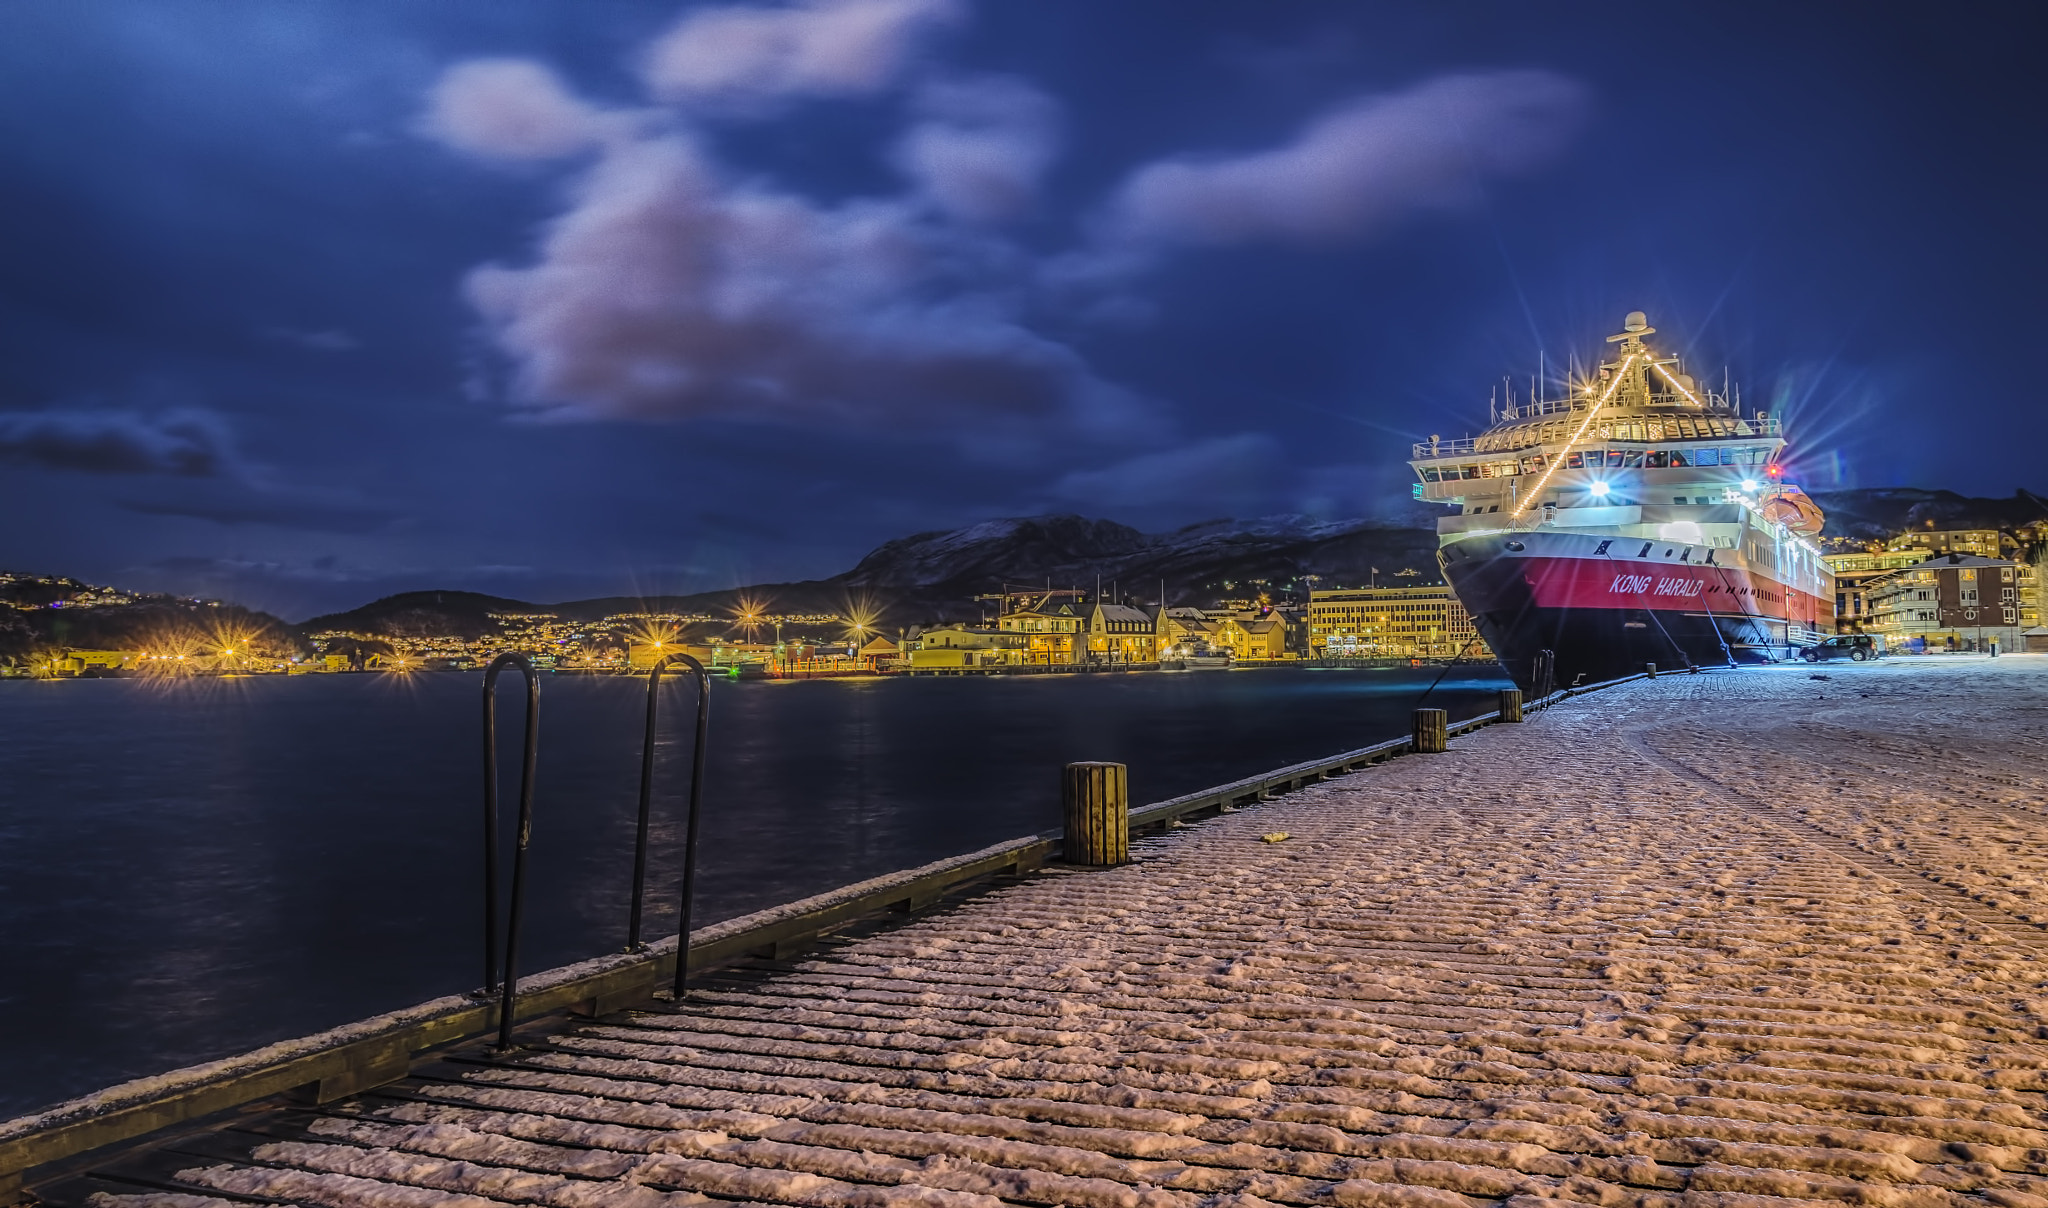 Photograph The Coastal Express by Espen Hanssen on 500px